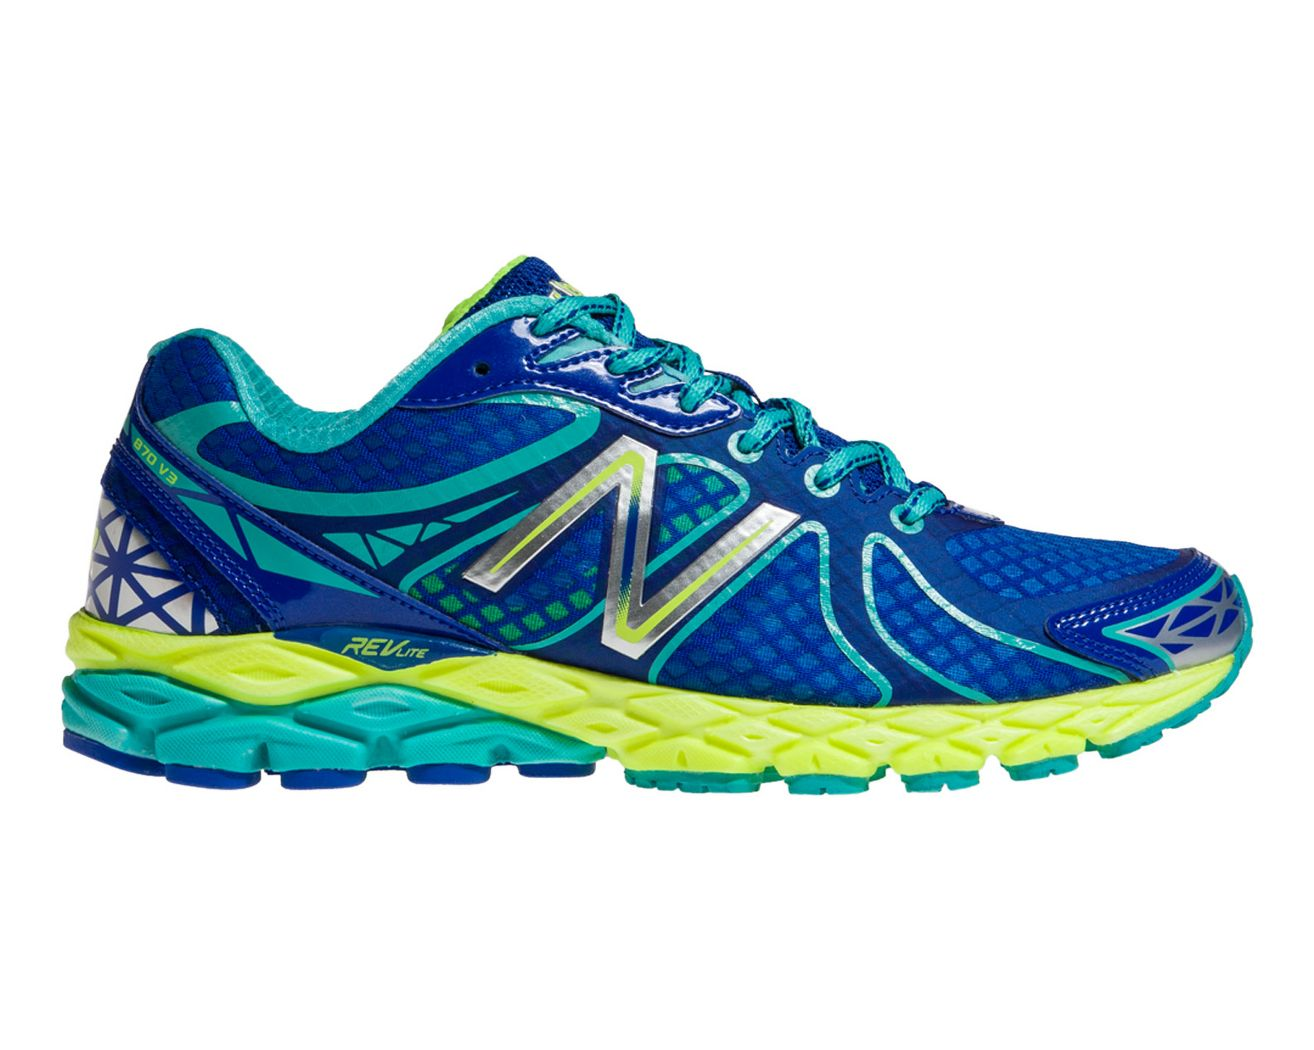 New Balance White Blue Ladies Running Shoes Running Shoes Balance 870v3 Ladies